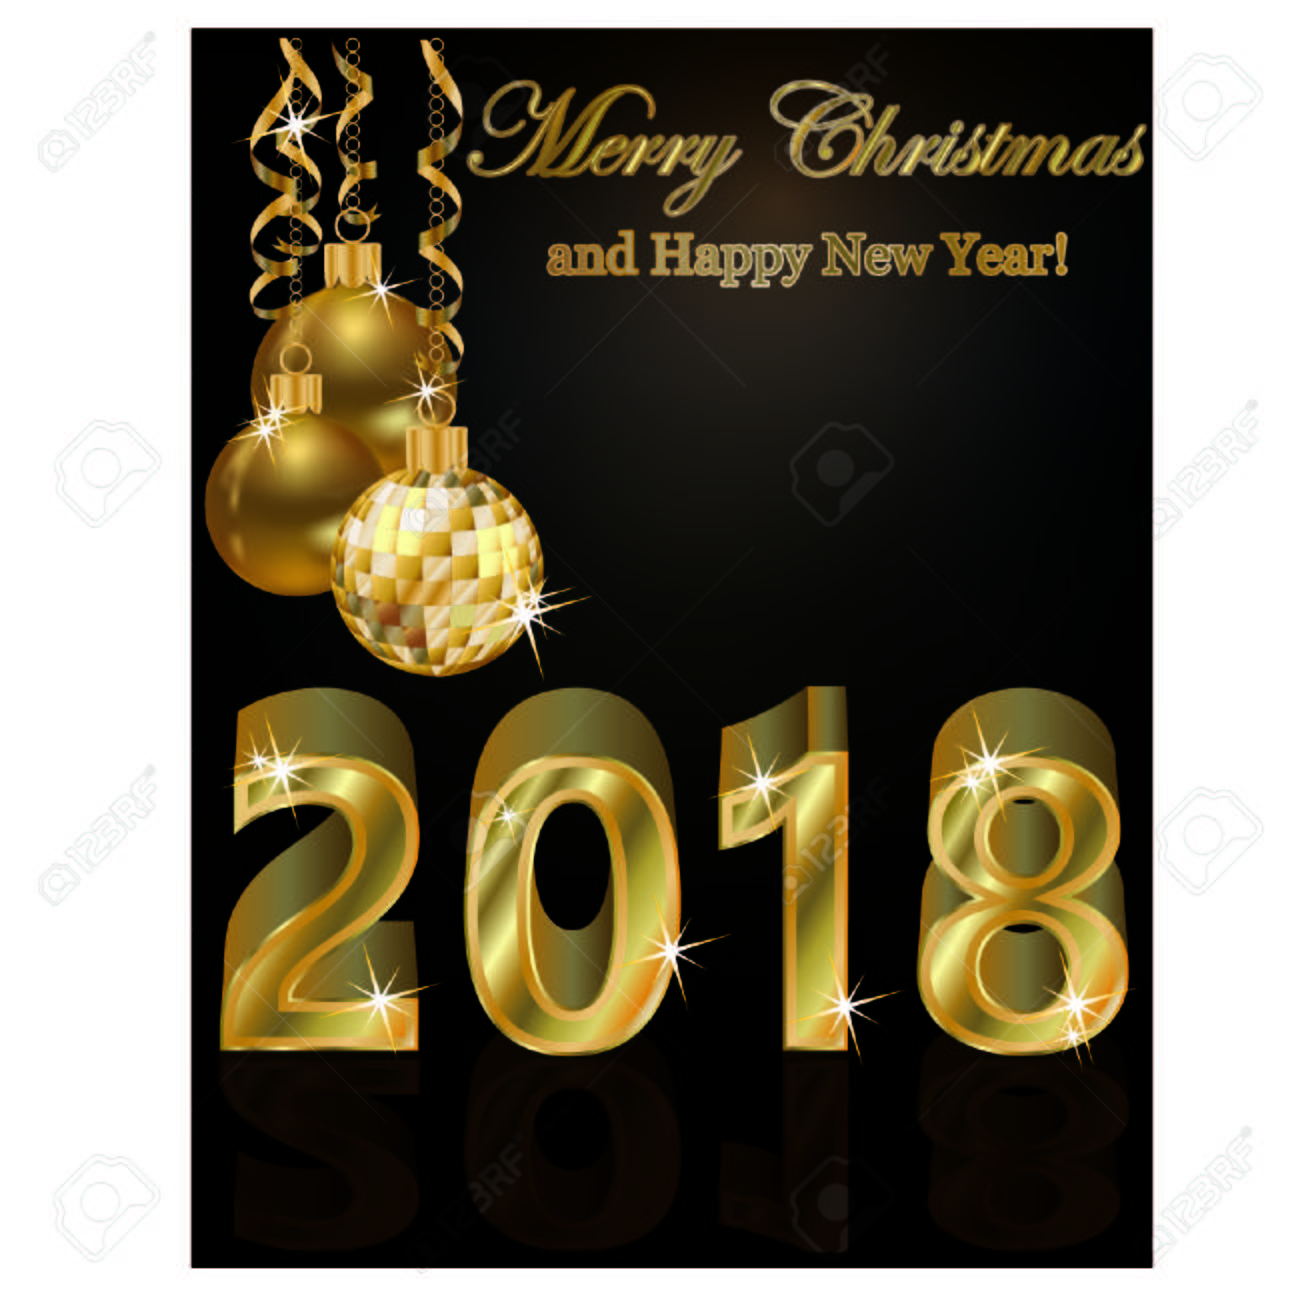 happy new year 2018 golden wallpaper design illustration stock vector 88203282